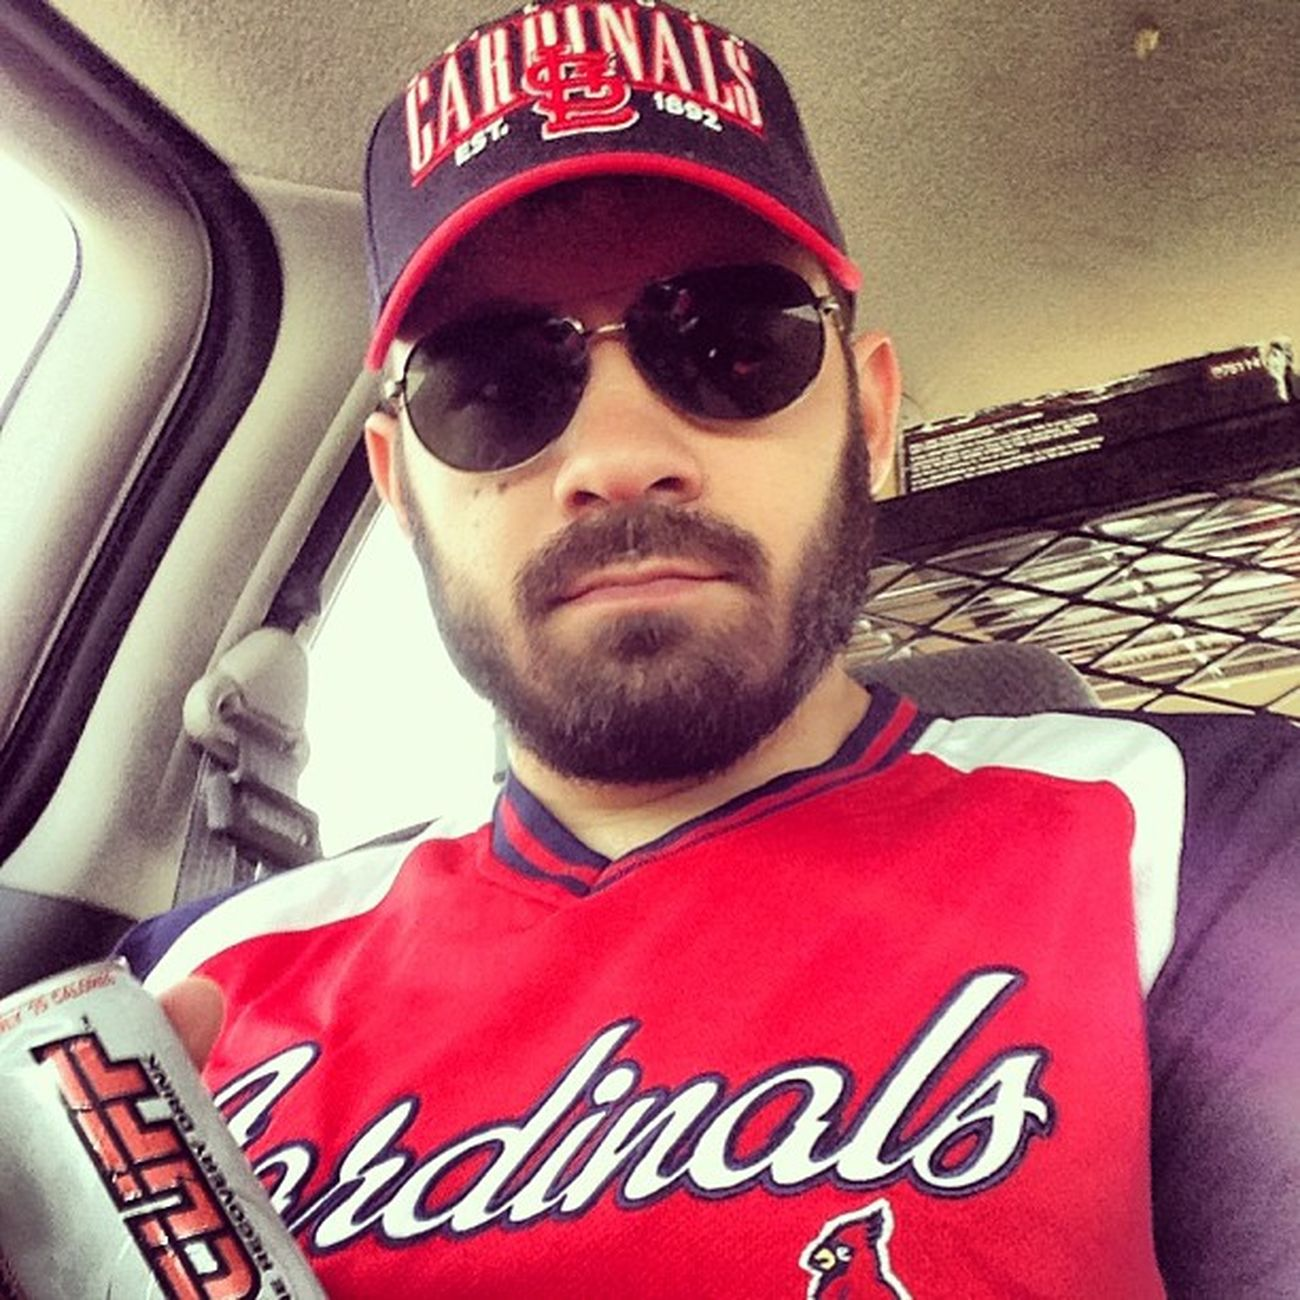 Guess who is going to the @cardinals opening day w/Thetasty ? Yep. This guy. @killcliff Stl